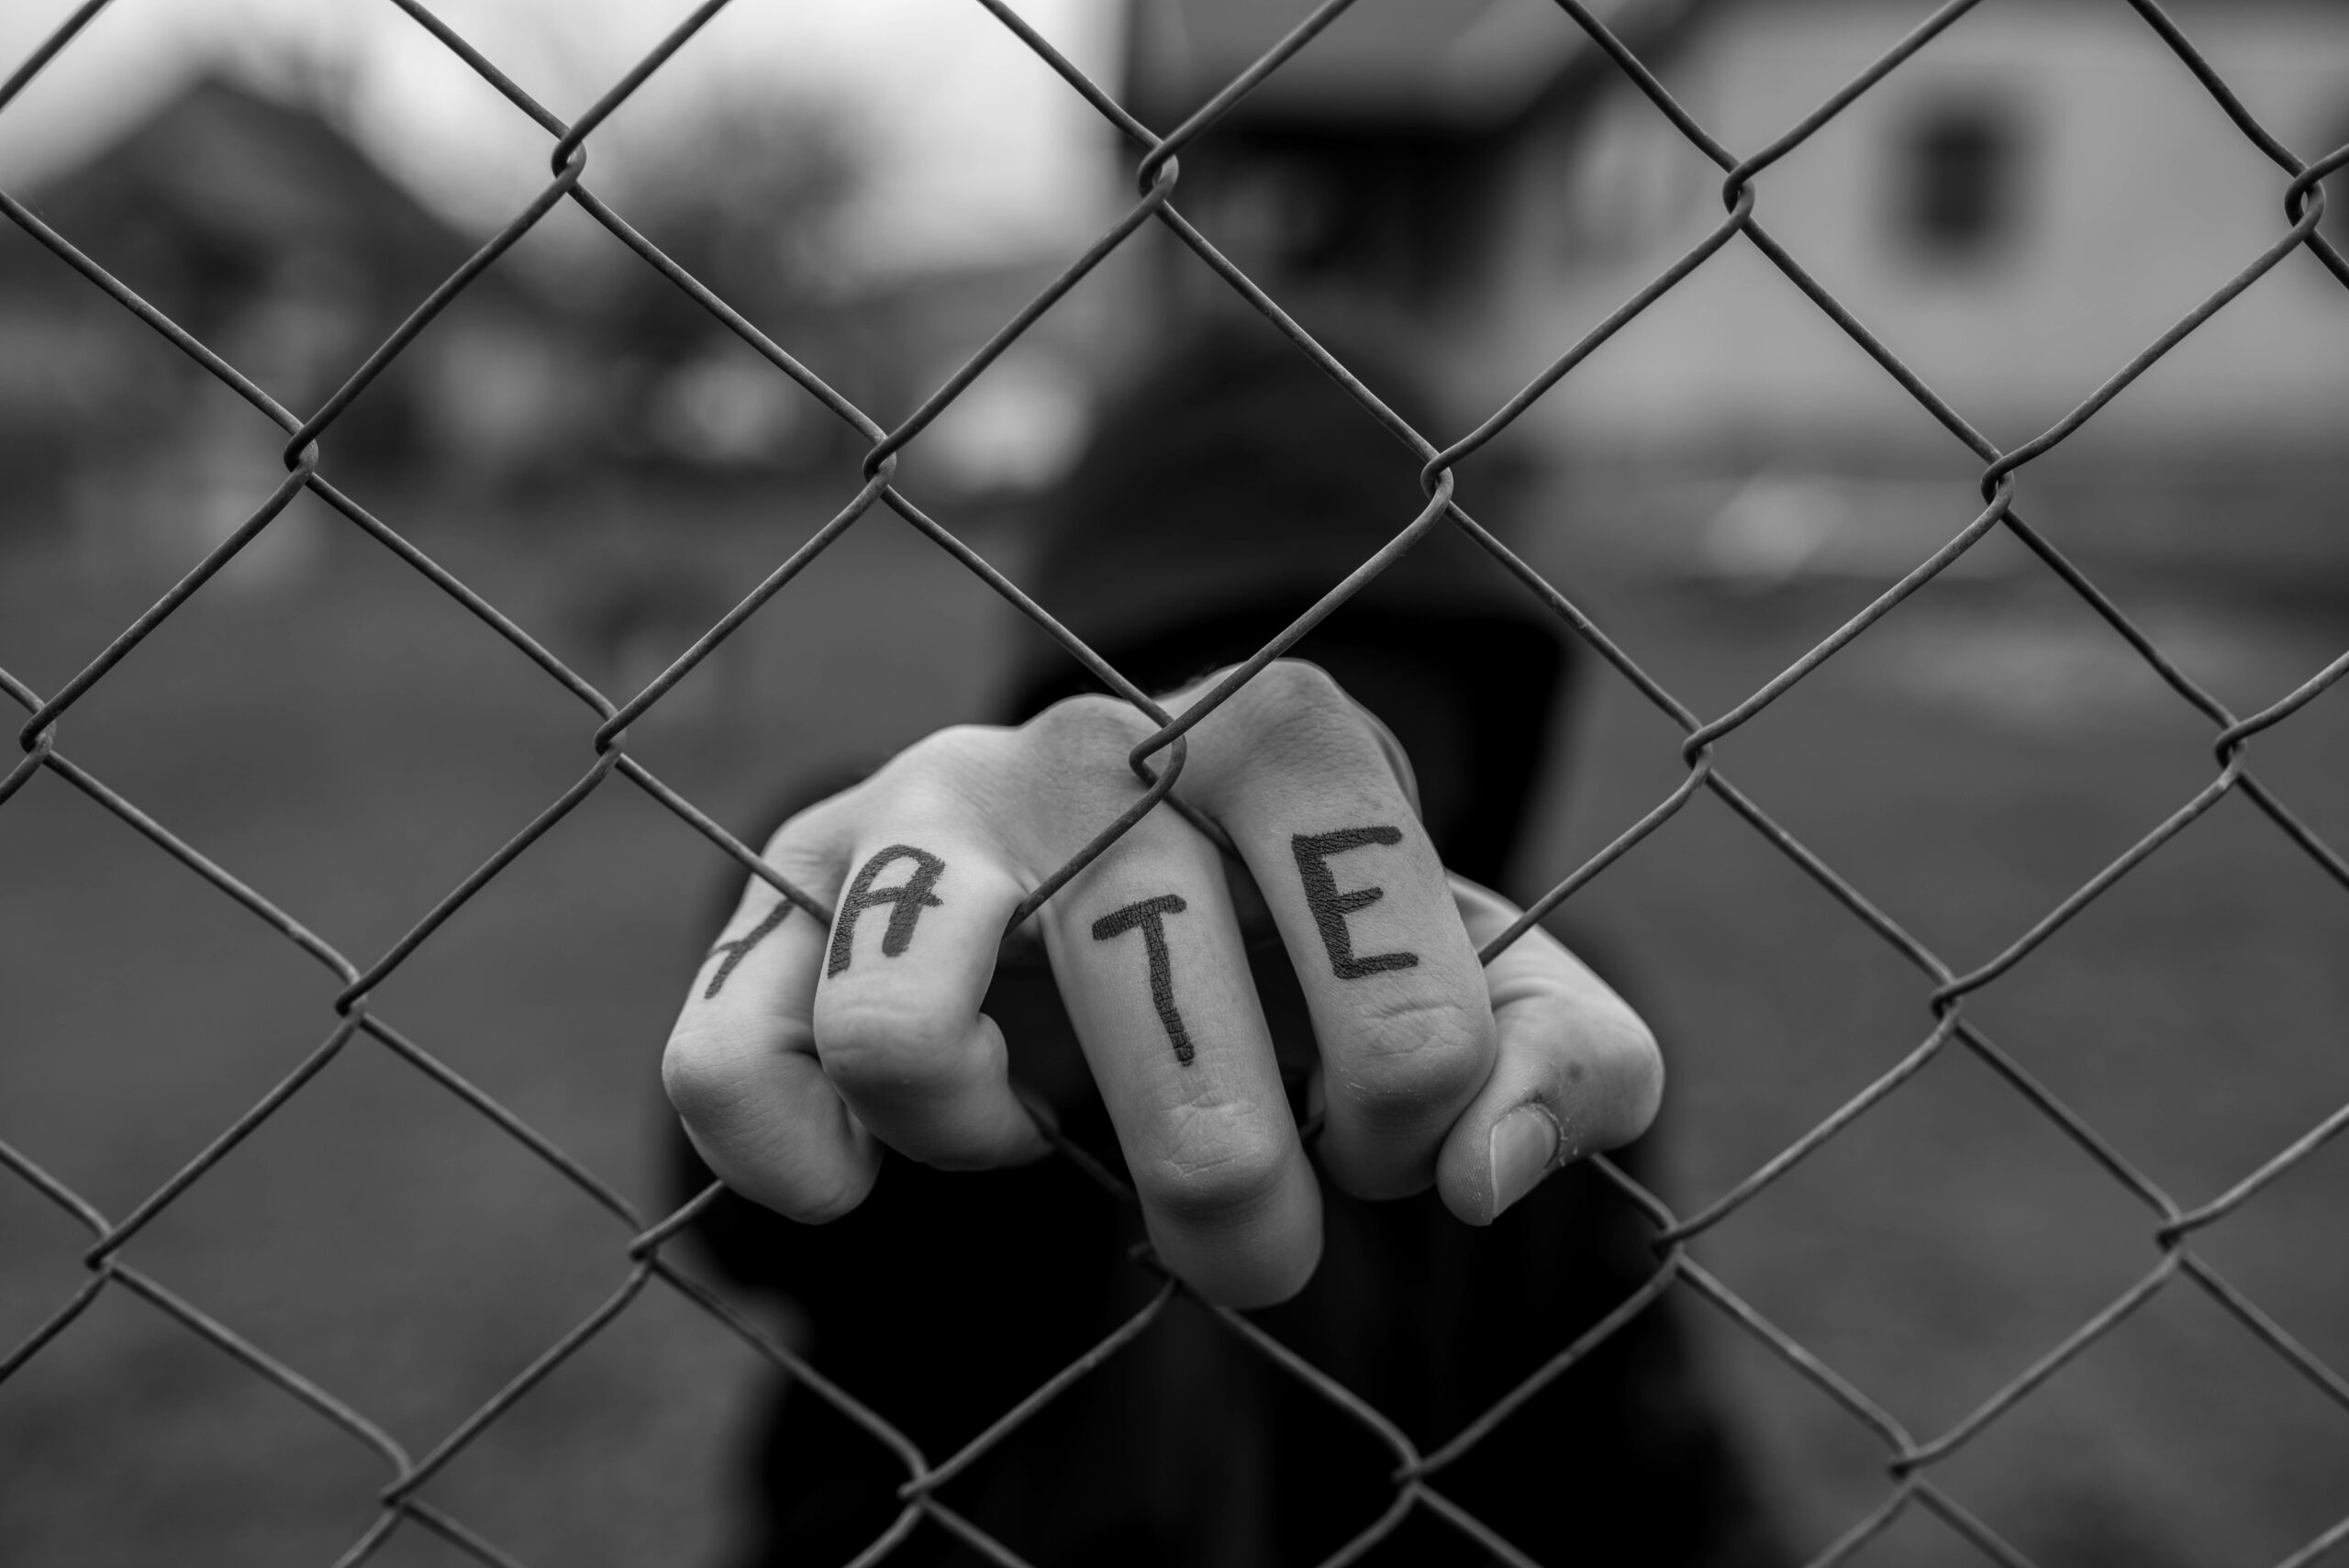 A black and white photo of a hand grasping a wire fence. H A T E is written on the four fingers pulling through the fence.